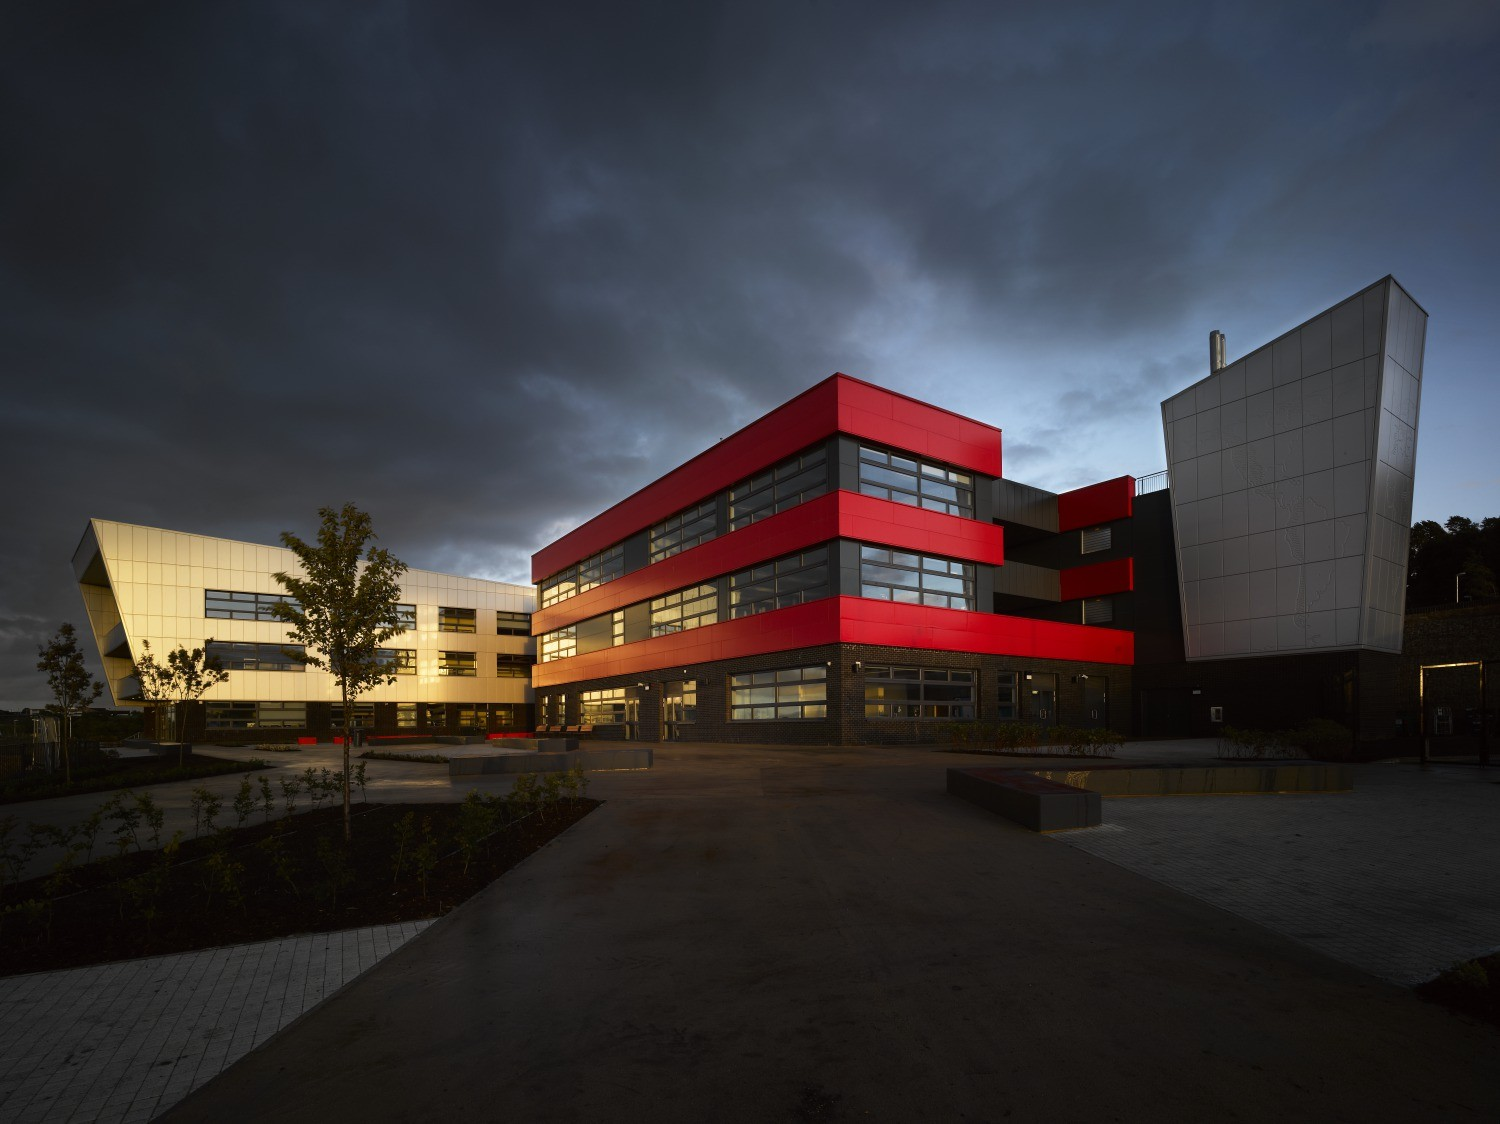 Blackburn Central High School / Nicholas Hare Architects, © Andy Haslam